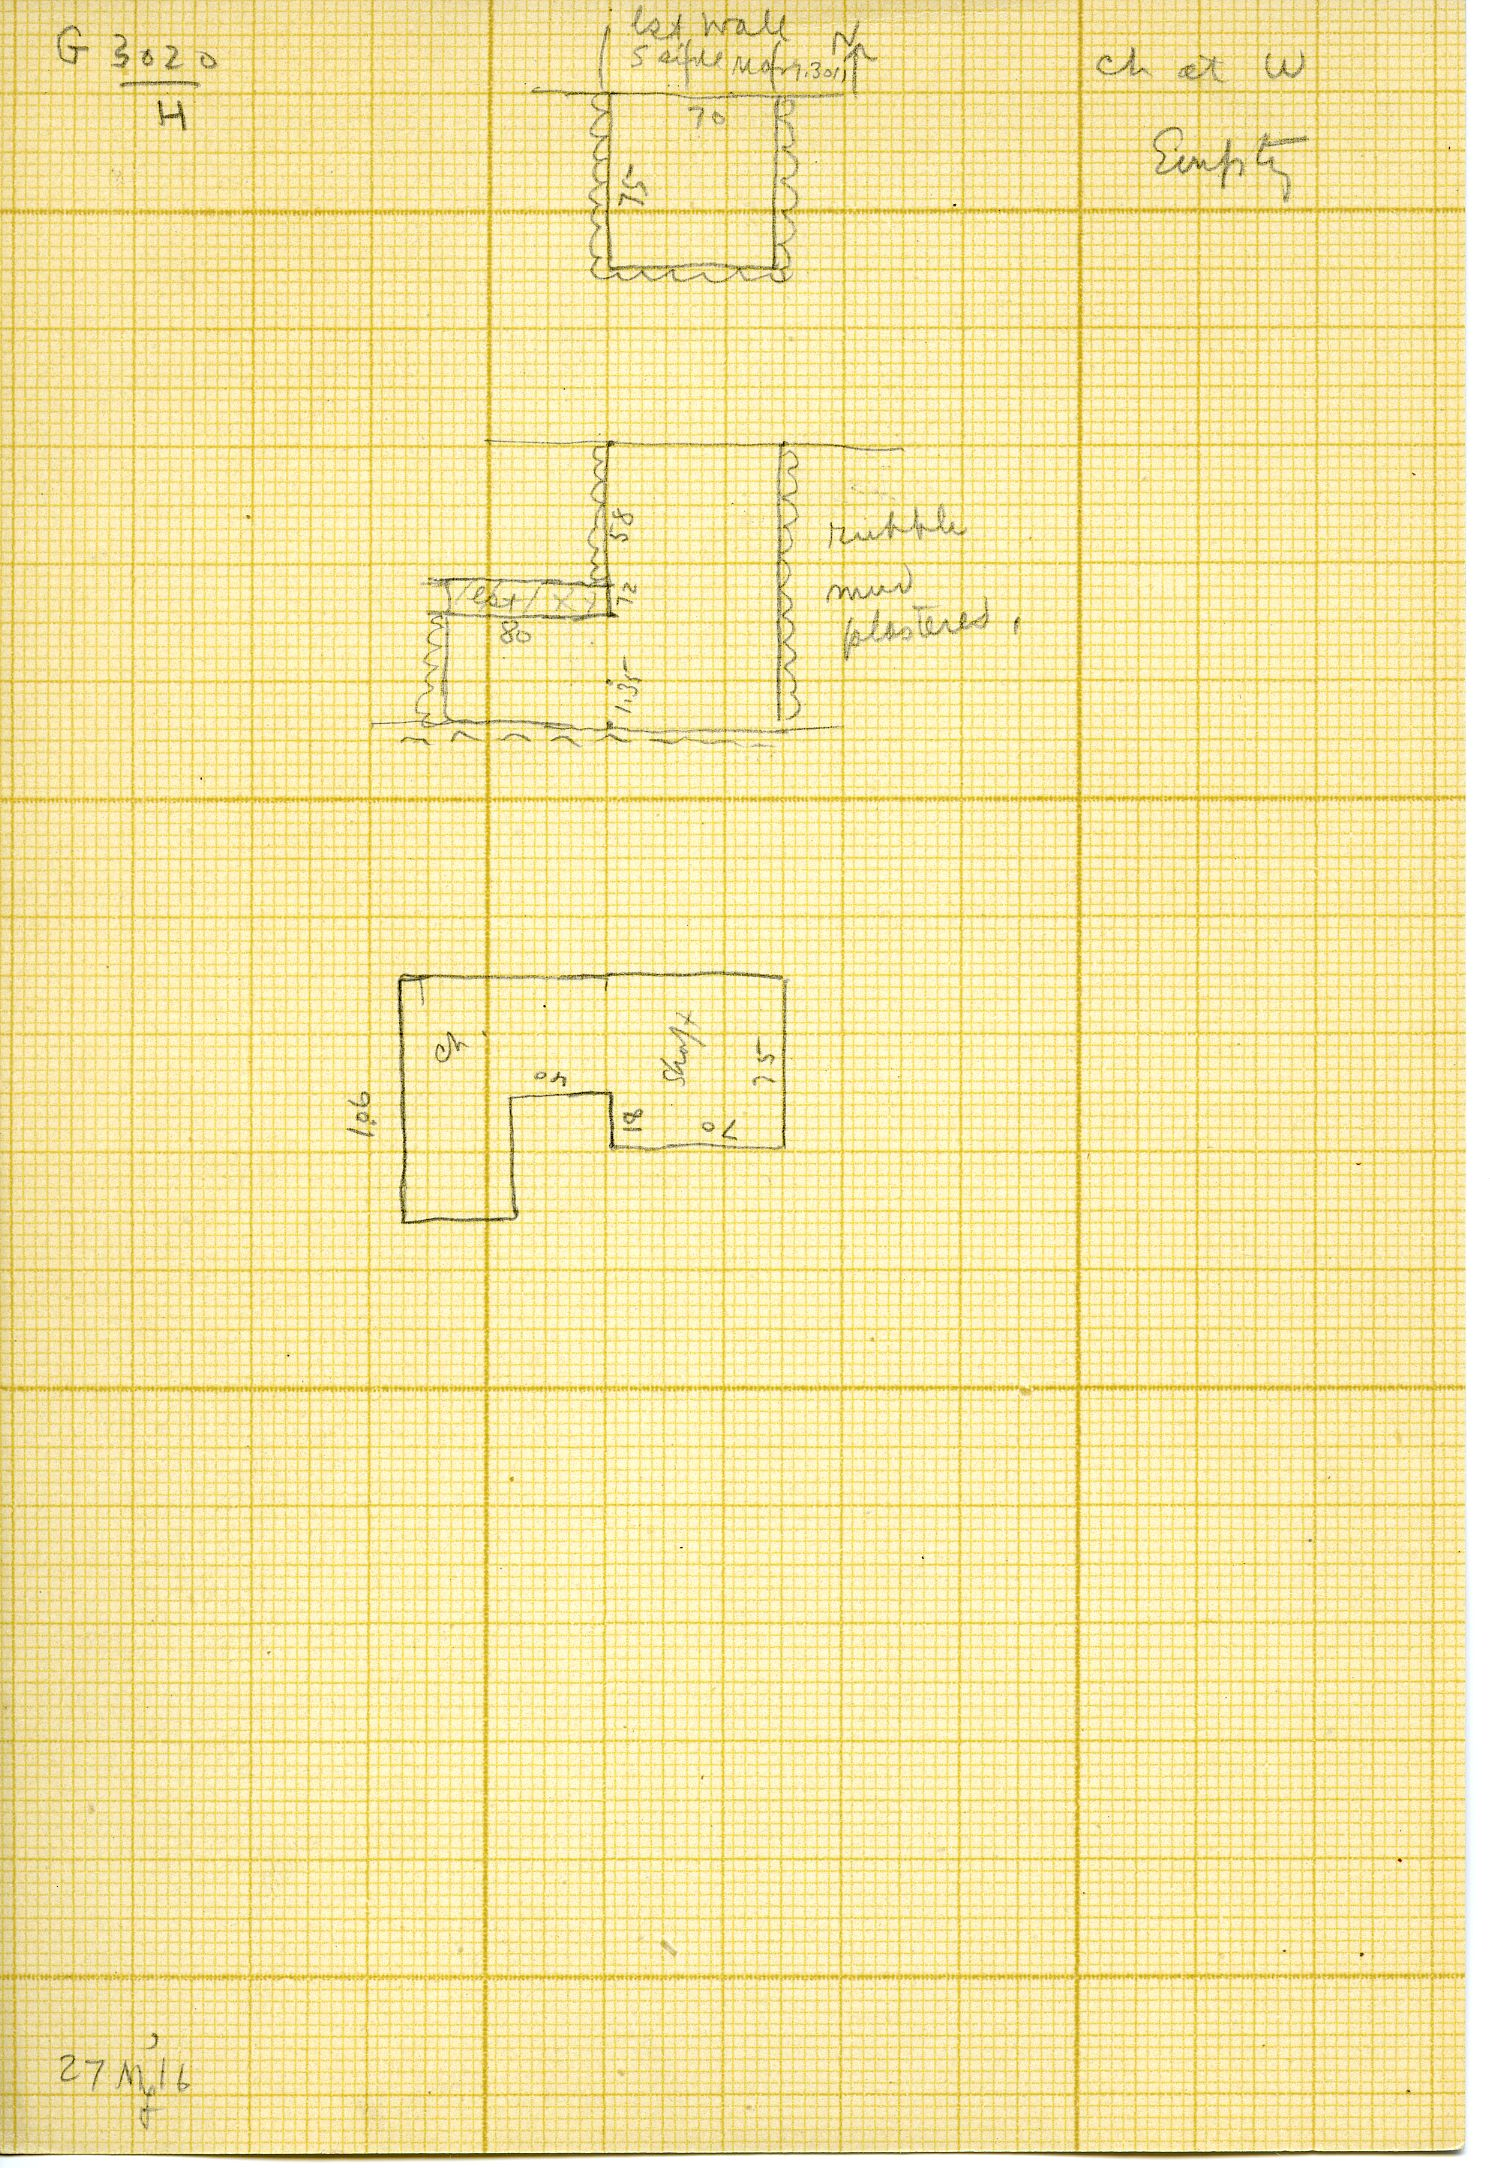 Maps and plans: G 3020, Shaft H